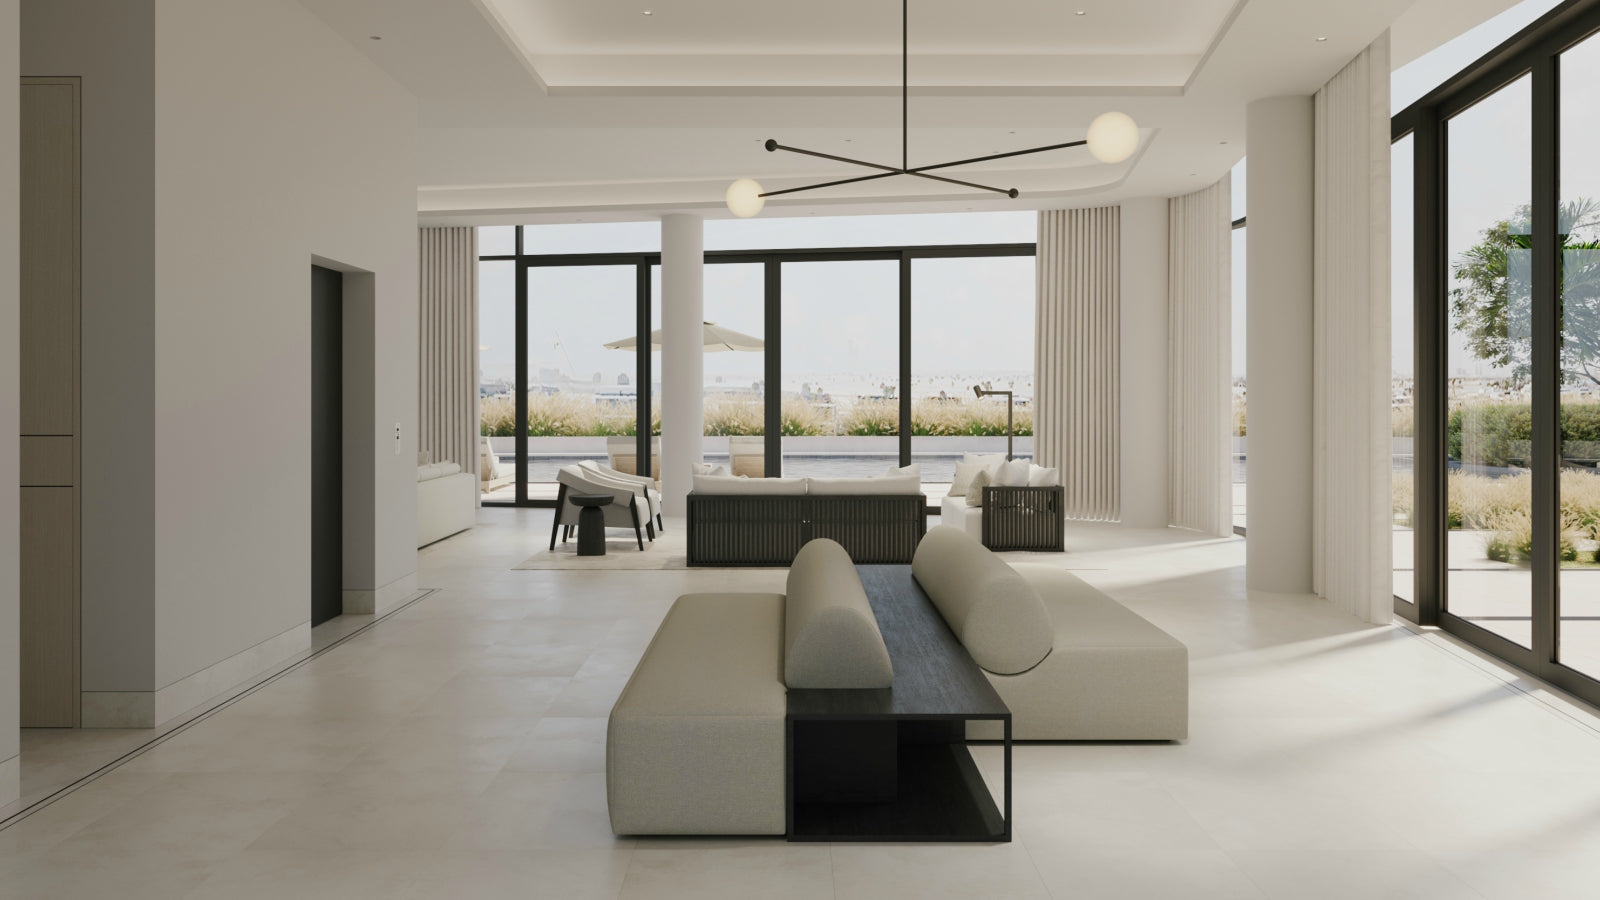 Alix Lawson | Minimalist Living Room | The Luxurist |  LuxDeco.com